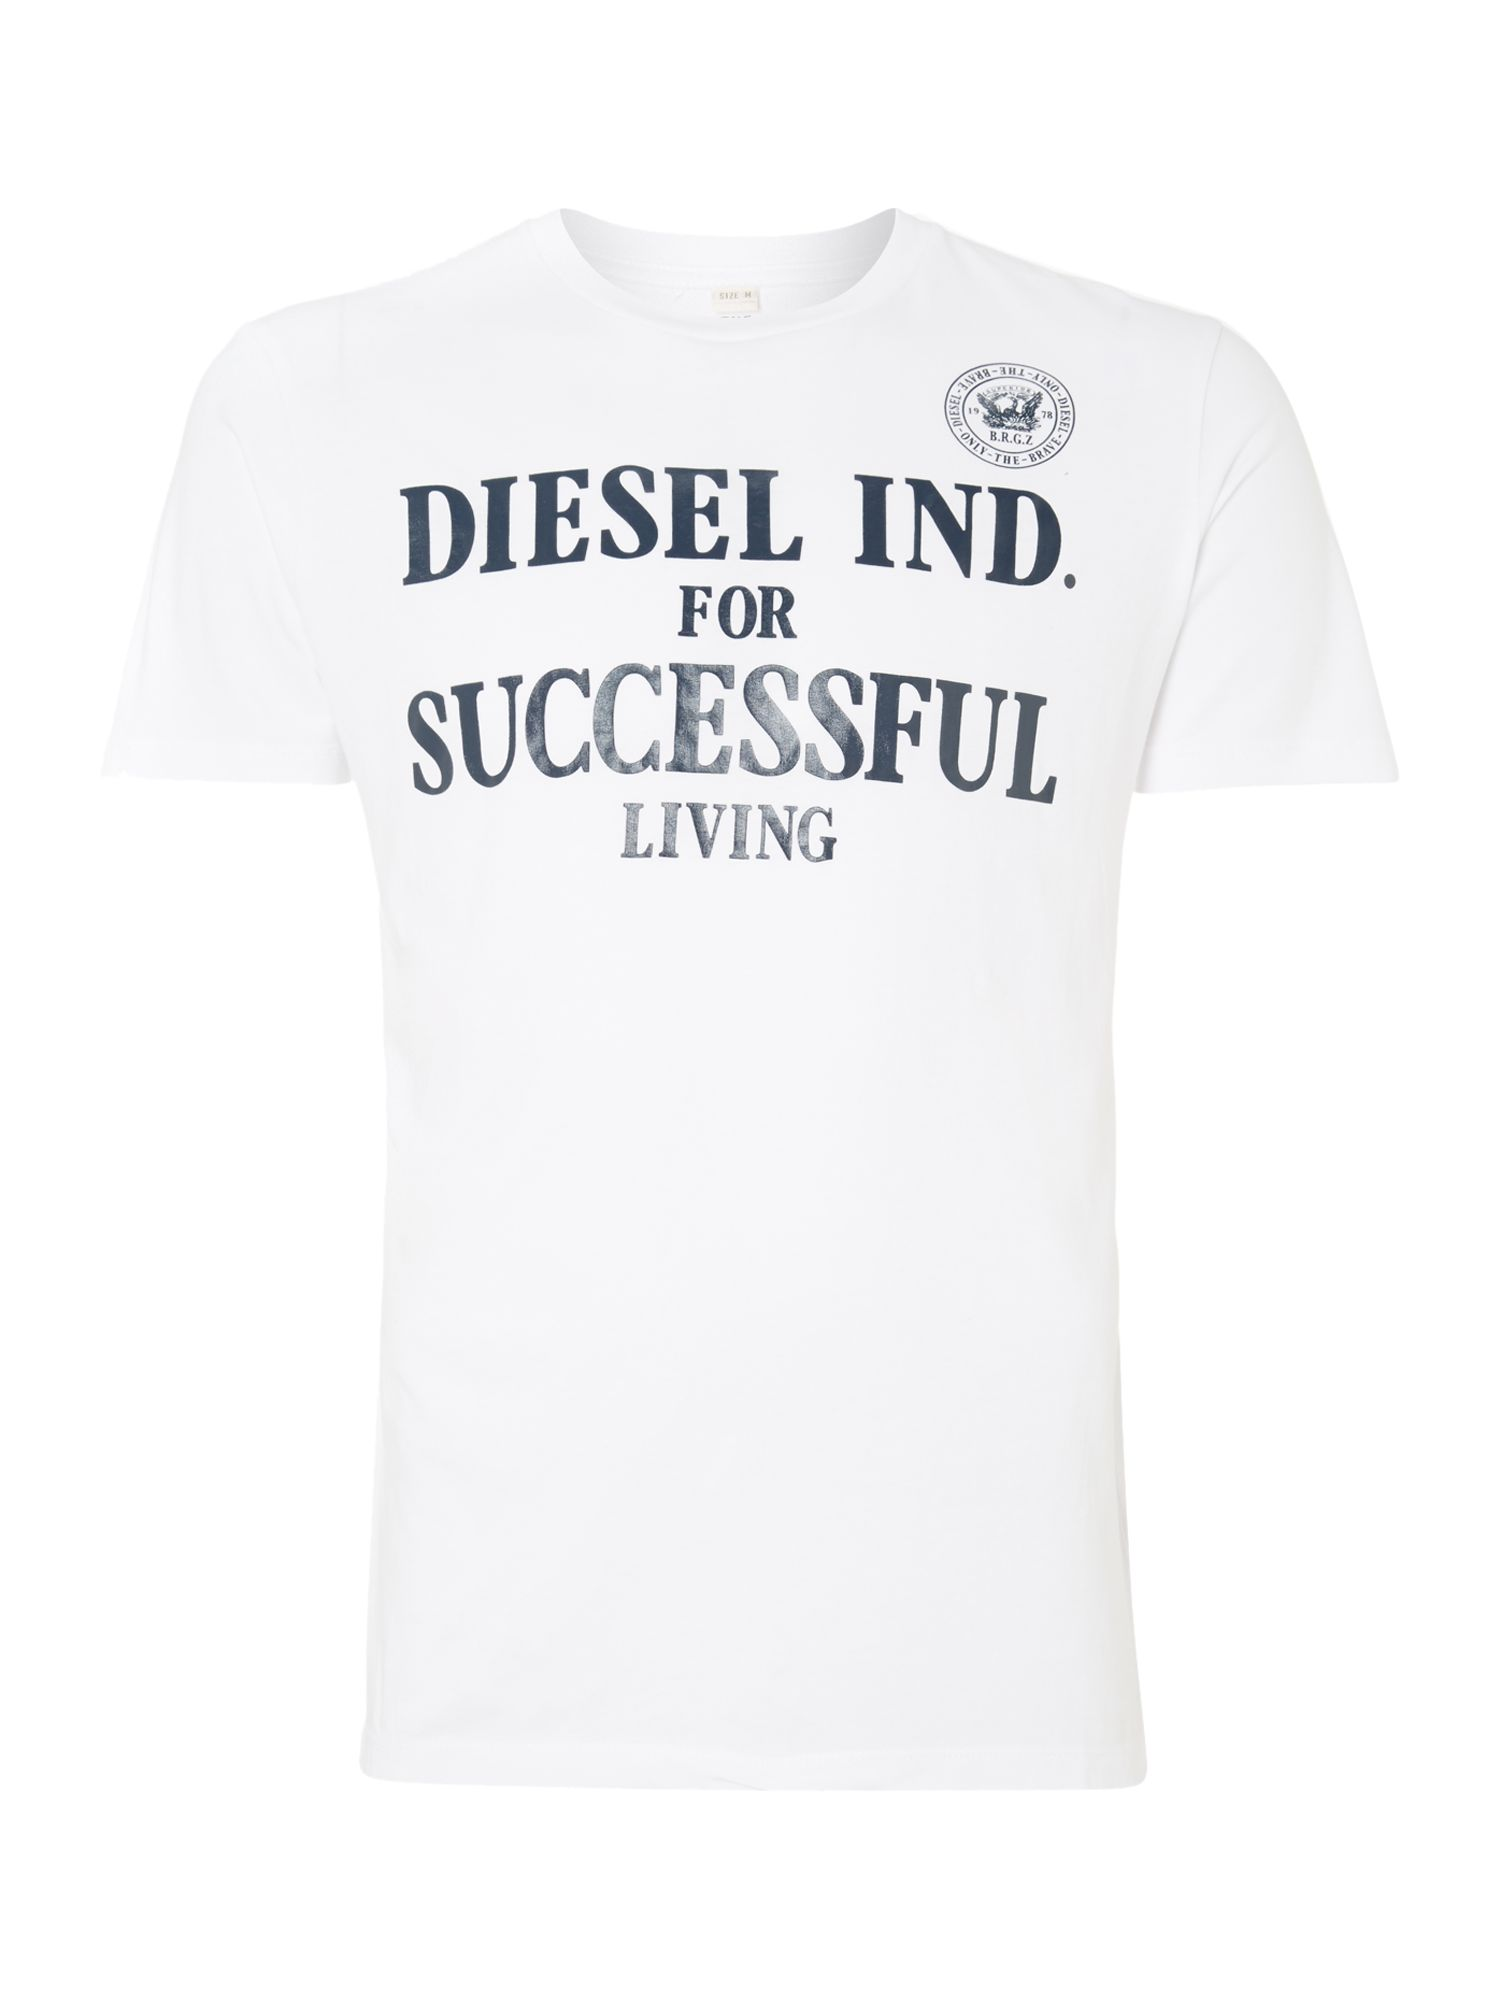 Diesel success t shirt